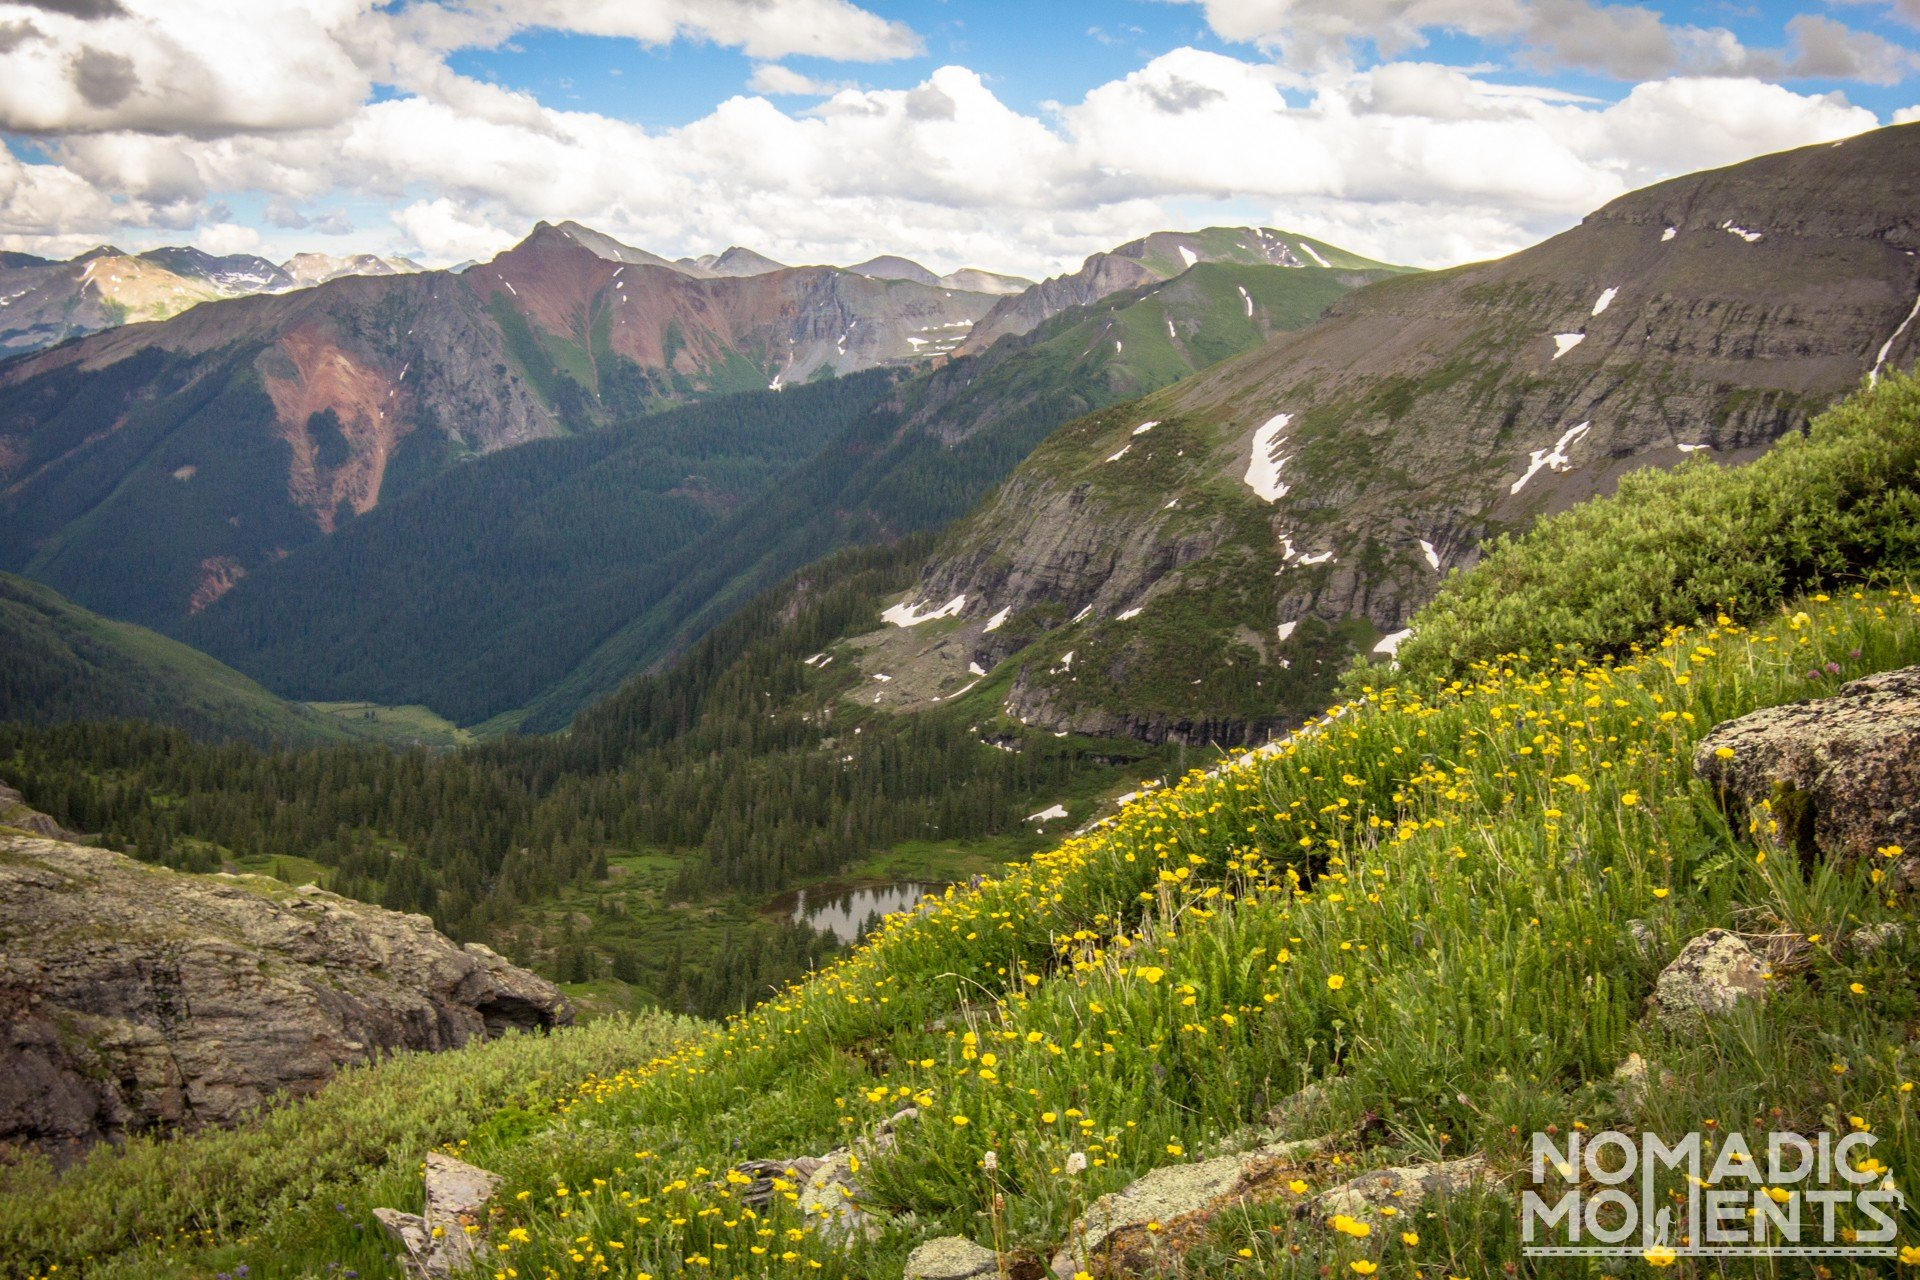 The view of the San Juan Mountains from the Upper Ice Lake Basin